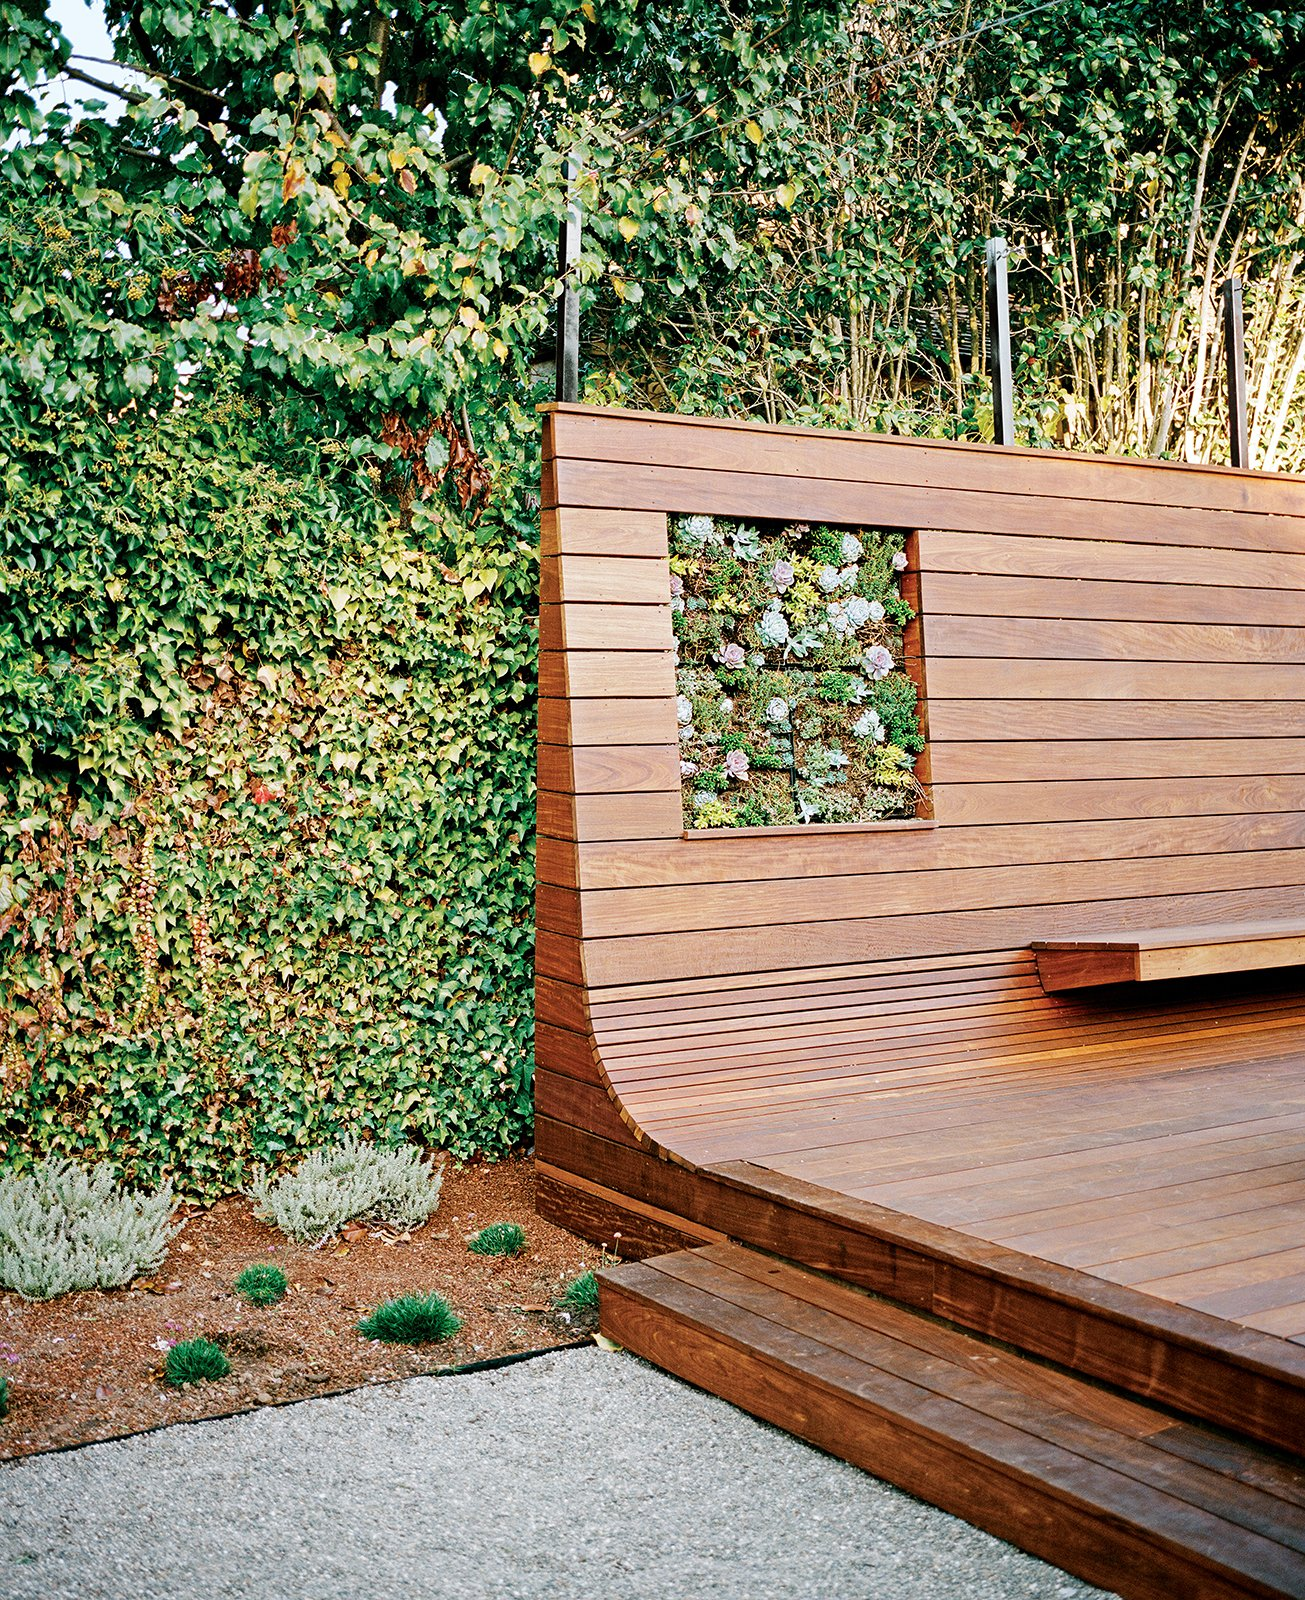 "Cox initially conceived the deck as a conventional surface for relaxing and entertaining. With the bench, however, he seized an opportunity to create something both functional and visually arresting. ""You go down these paths and, as the design mutates, other ideas attach themselves and make it stronger and more interesting,"" he says. Tagged: Outdoor, Wood Patio, Porch, Deck, Small Patio, Porch, Deck, and Back Yard. Bay Area Ipe-Clad Backyard Getaway - Photo 4 of 6"